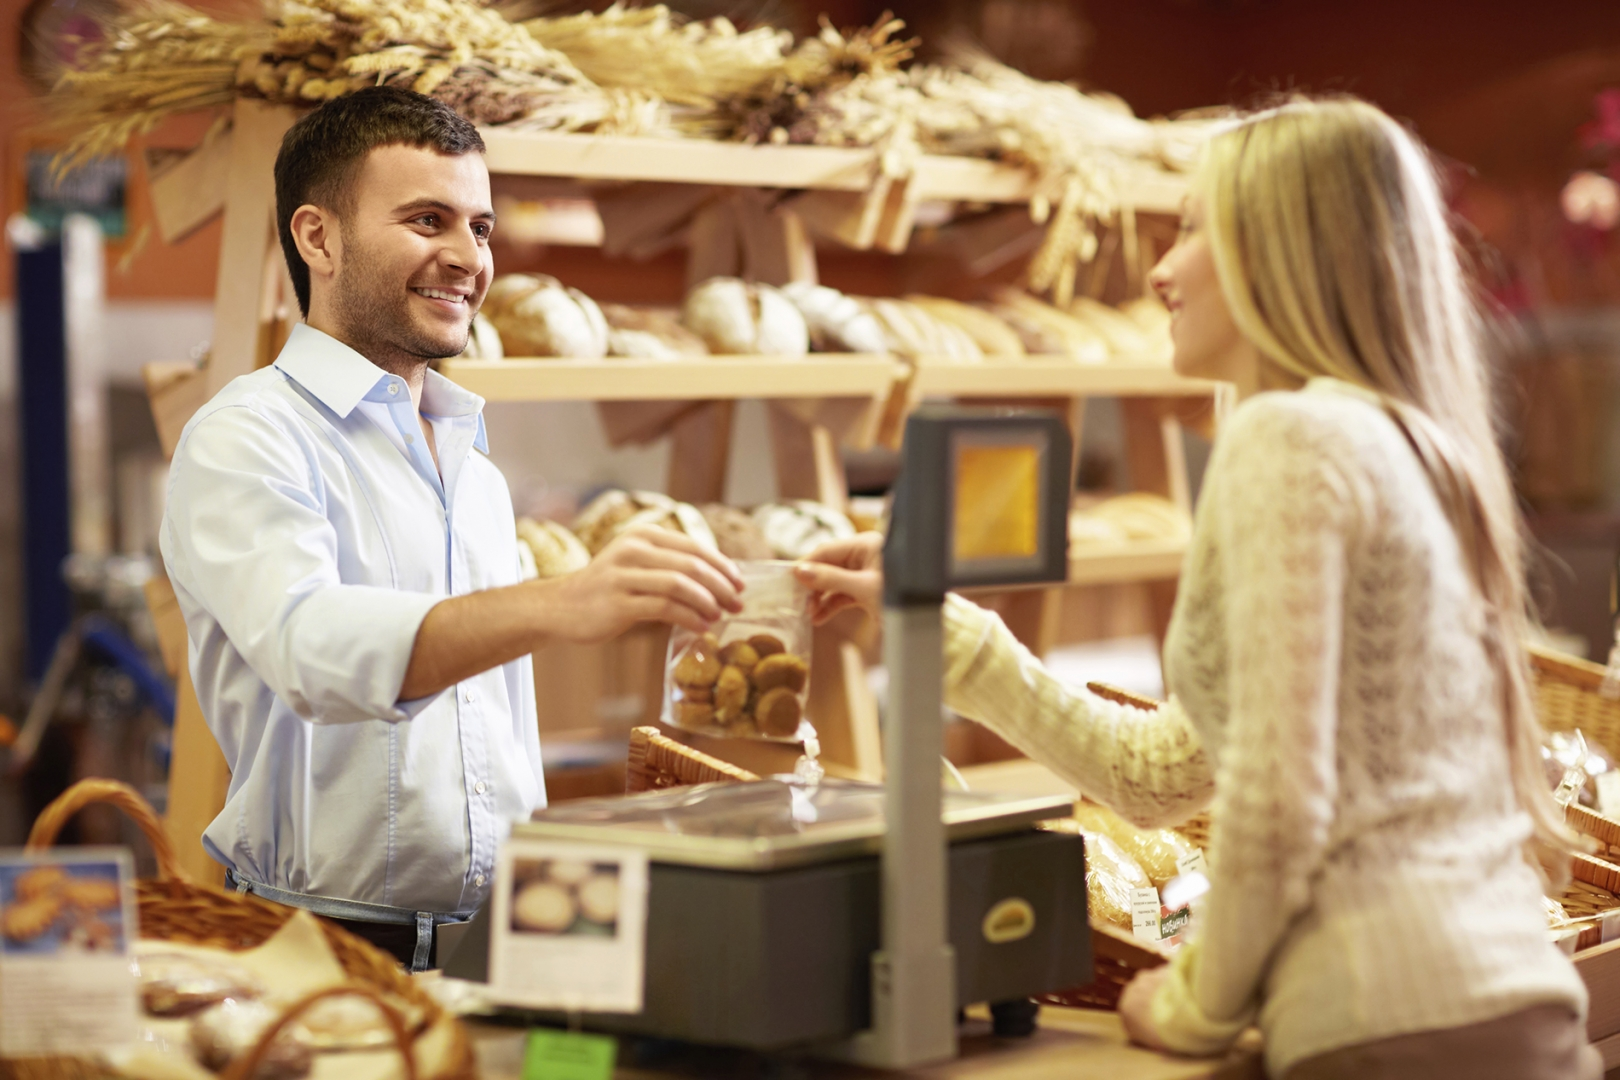 customer completing transaction with cashier at a bakery